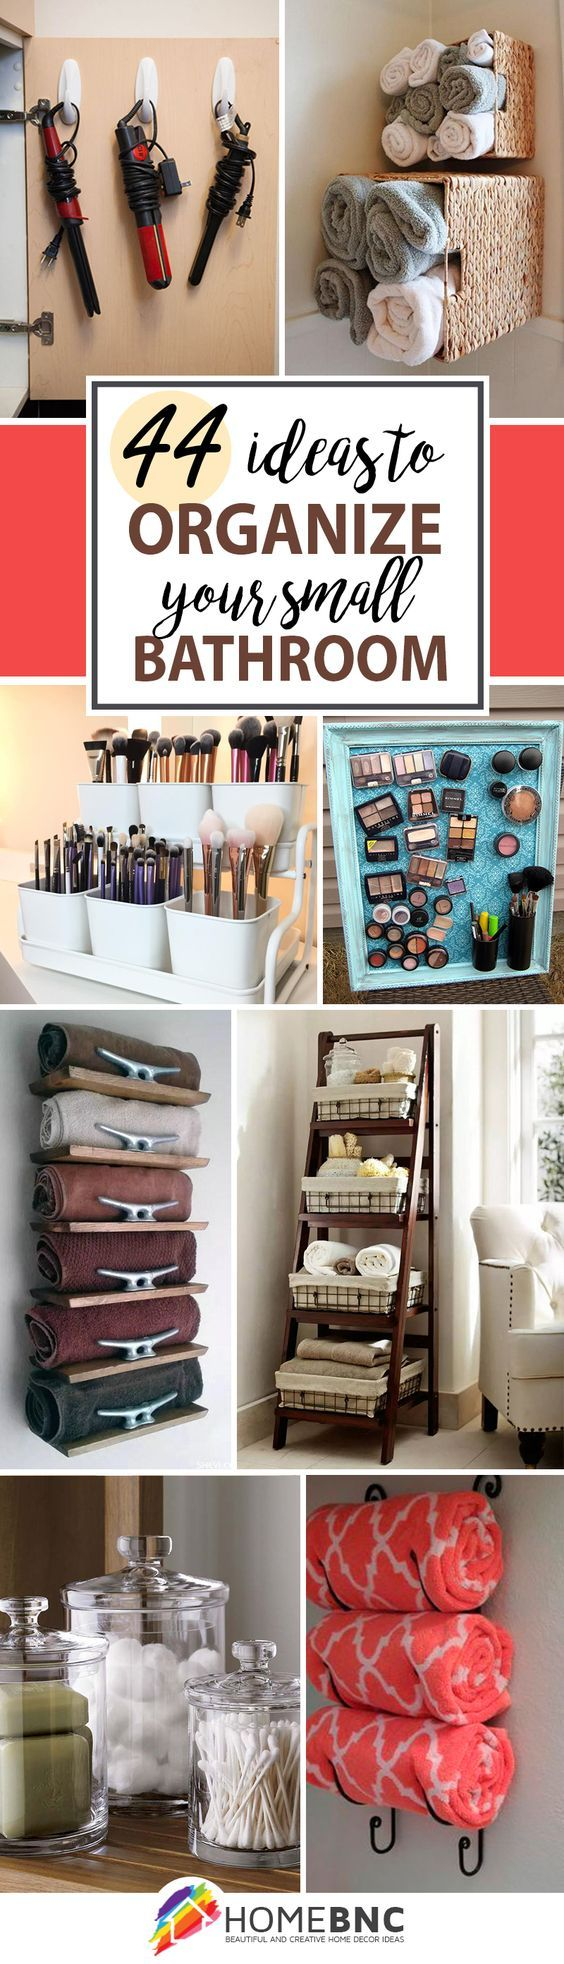 Best 25+ Organizing small homes ideas on Pinterest | Small apartment  organization, Small home decorating ideas and Kitchen organization for  small spaces